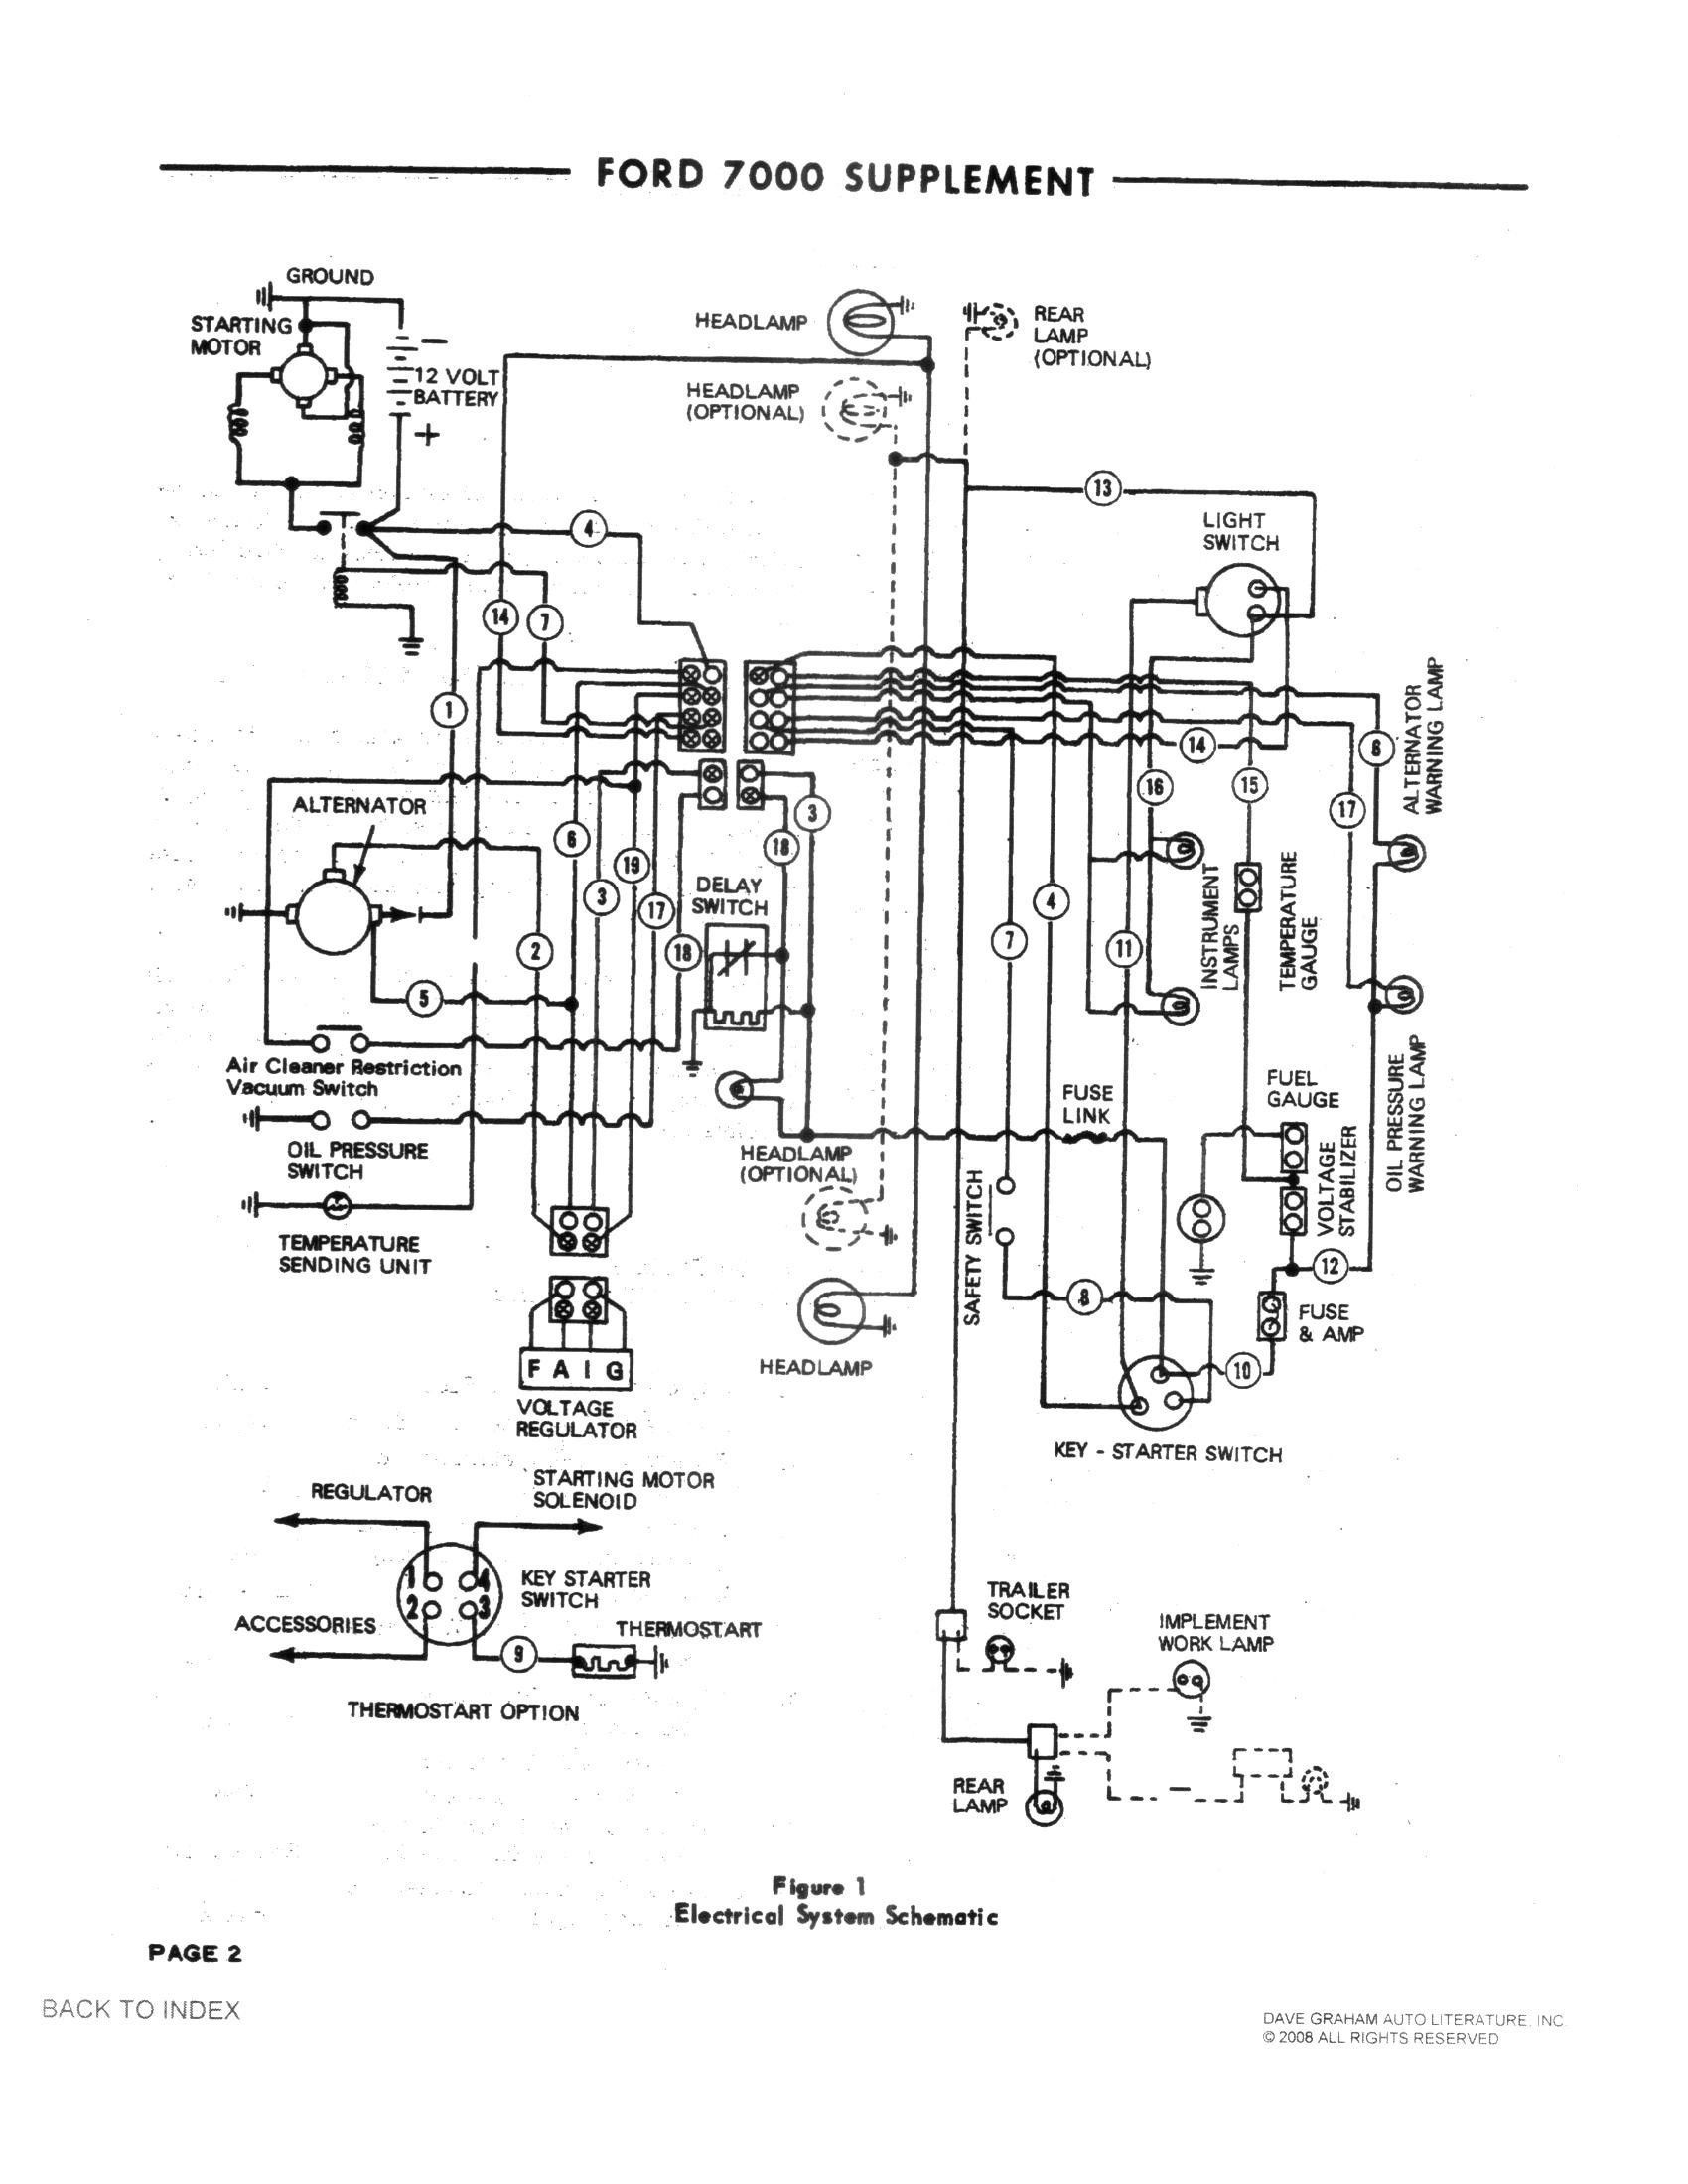 Ford Alternator Wiring Diagram Internal Regulator : alternator, wiring, diagram, internal, regulator, Inspirational, Wiring, Diagram, Leece, Neville, Alternator, #diagrams, #digramssample, #diagramimages, #wiringdiagramsa…, Alternator,, Diagram,, Electrical